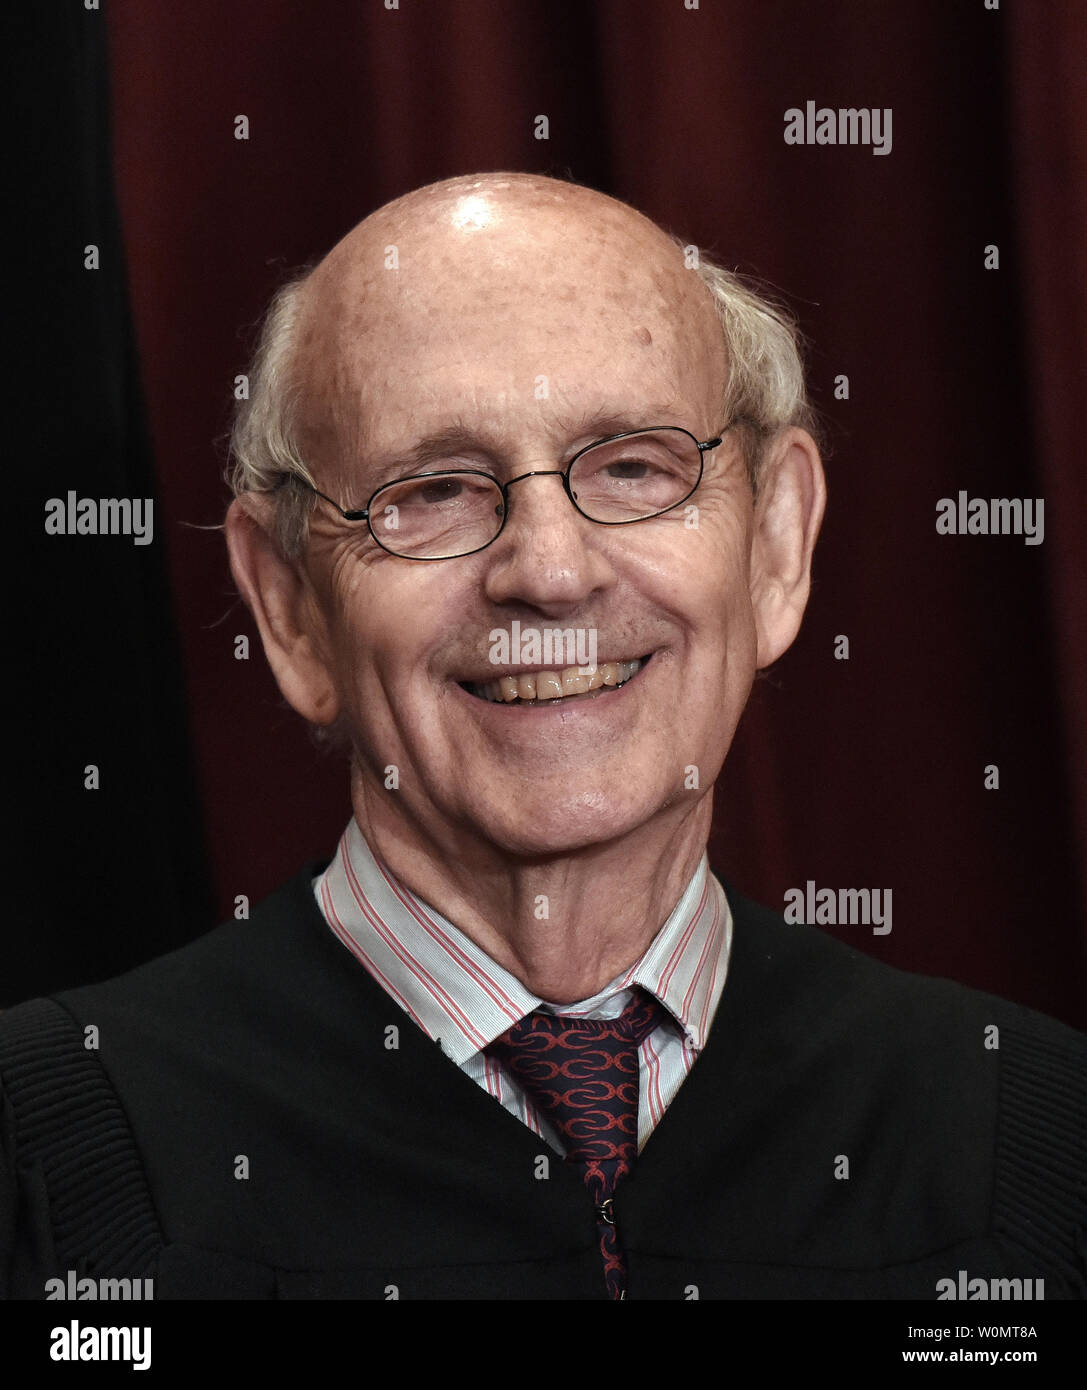 Associate Justice Stephen Breyer is shown as members of the U.S. Supreme Court pose for a group photograph at the Supreme Court building in Washington, DC on June 1 2017.   Photo by Olivier Douliery/UPI - Stock Image